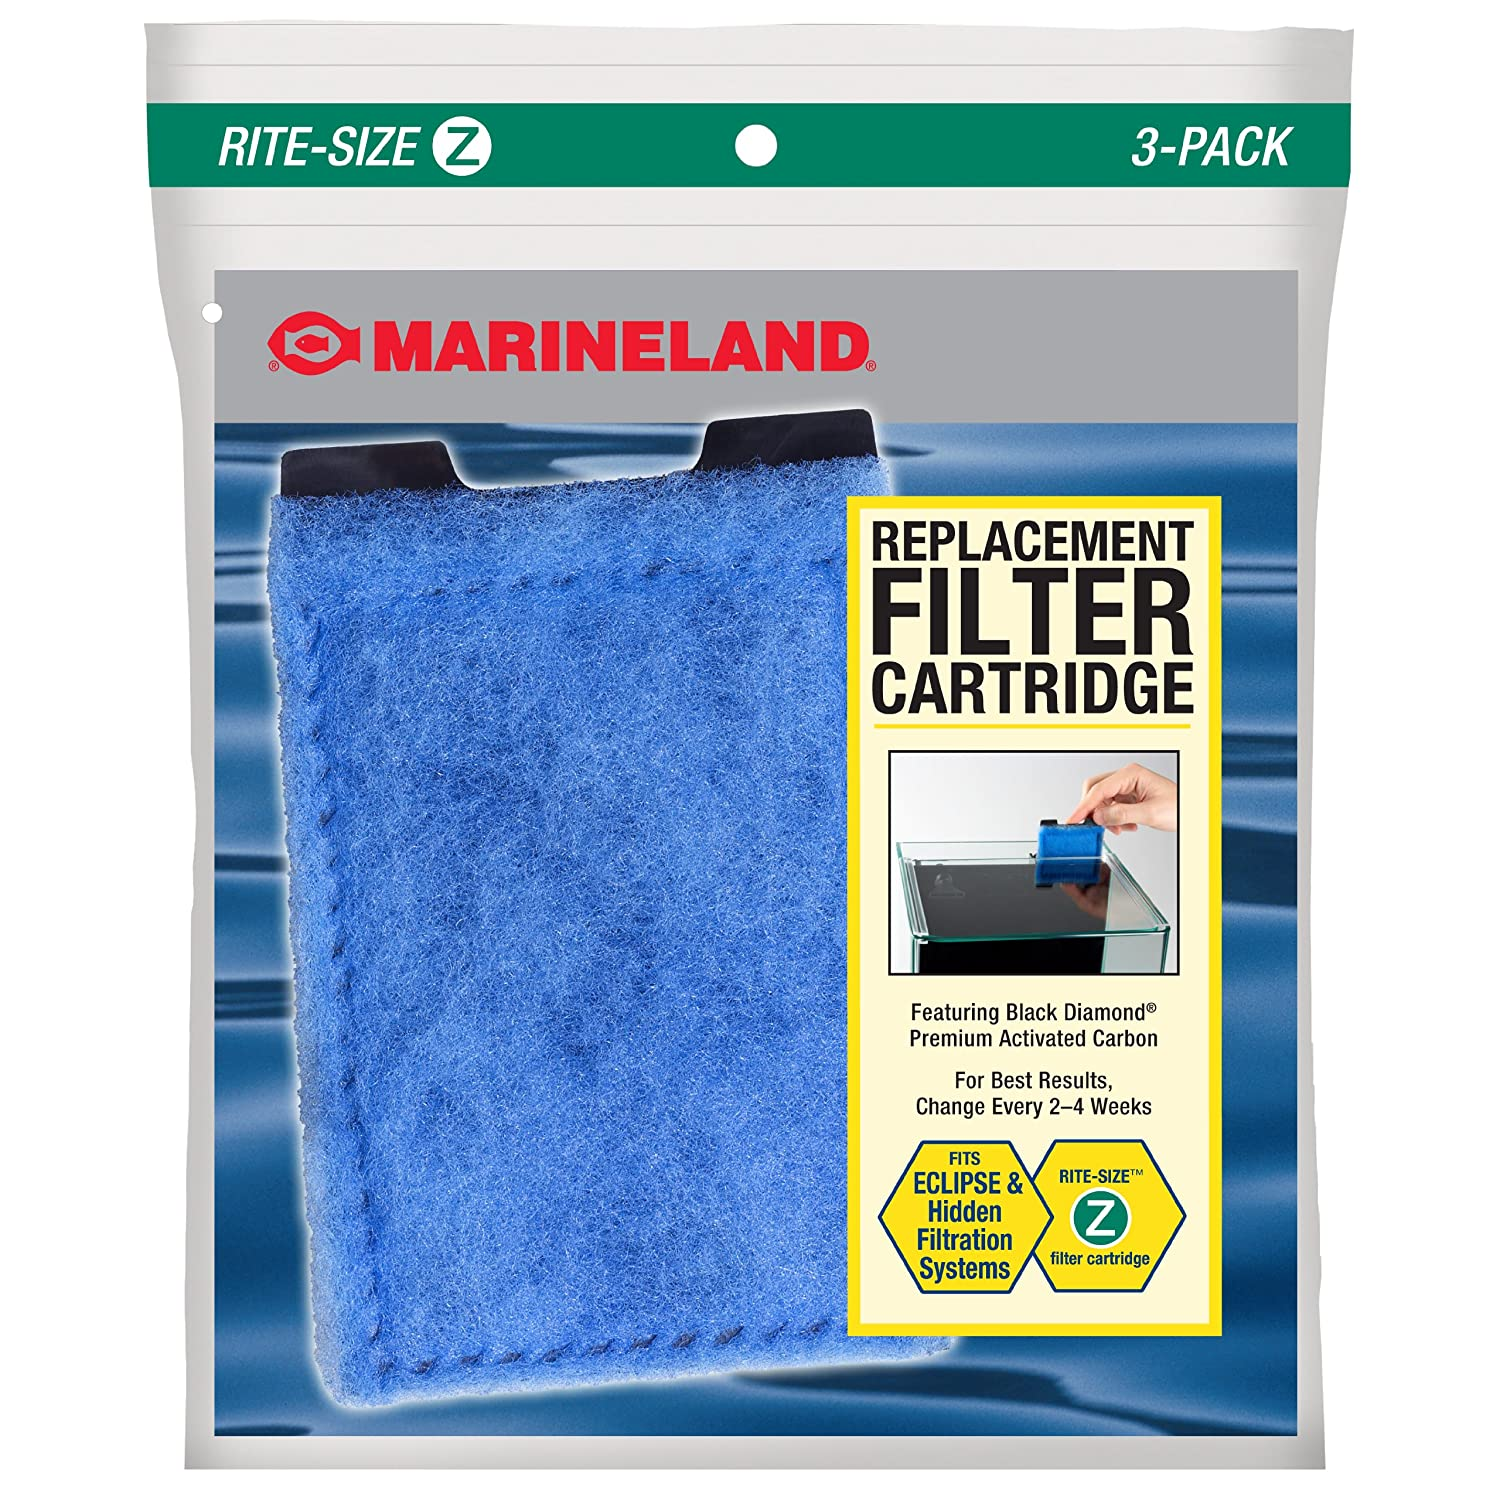 MarineLand Rite-Size Cartridge